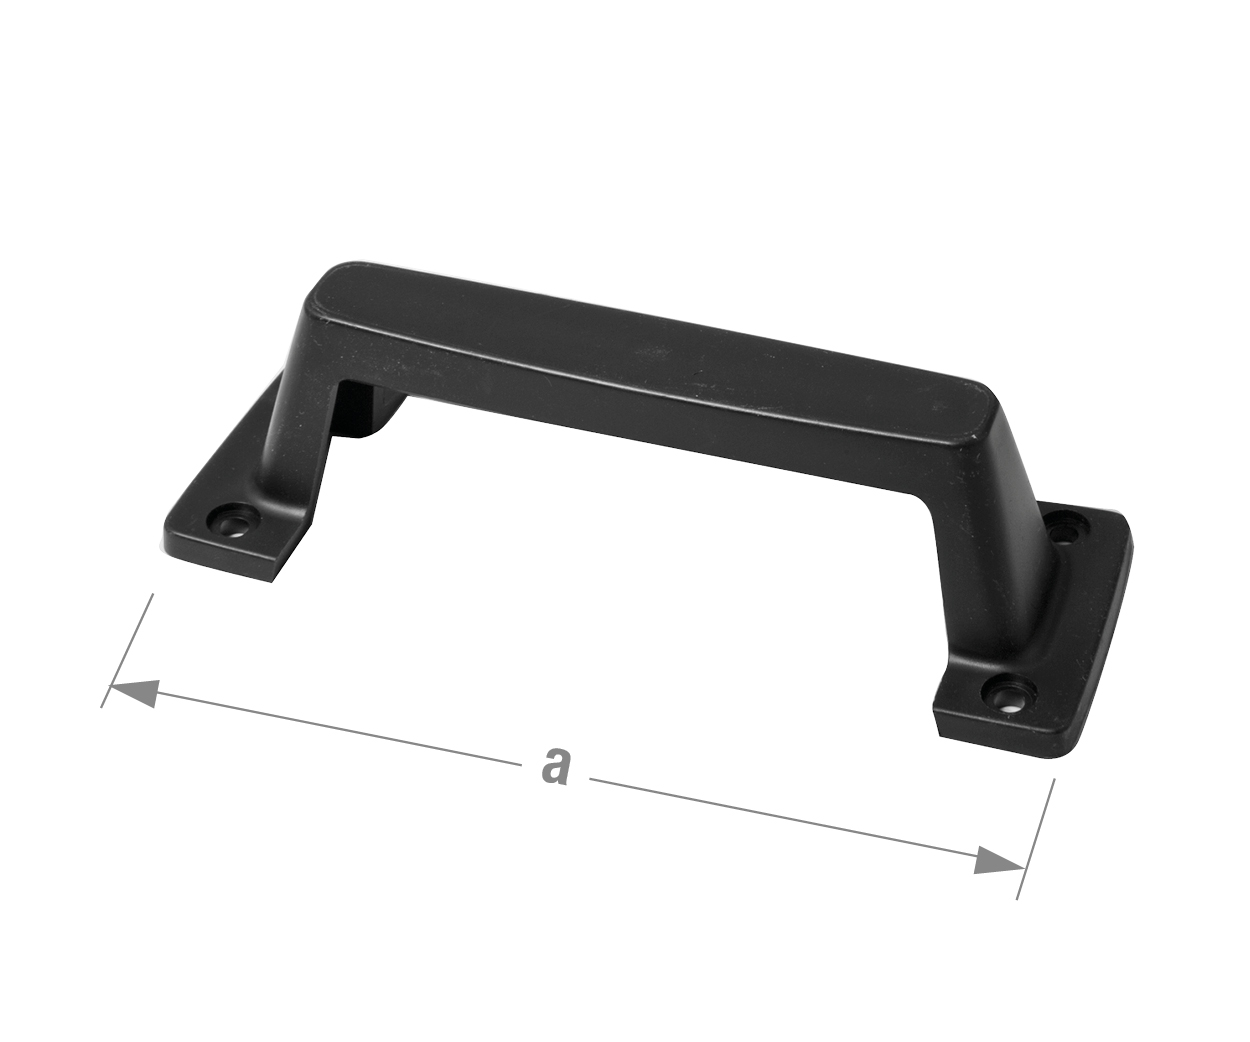 Accessories For Garage Accessories For Doors And Wall Doors Handles Handles For Garage